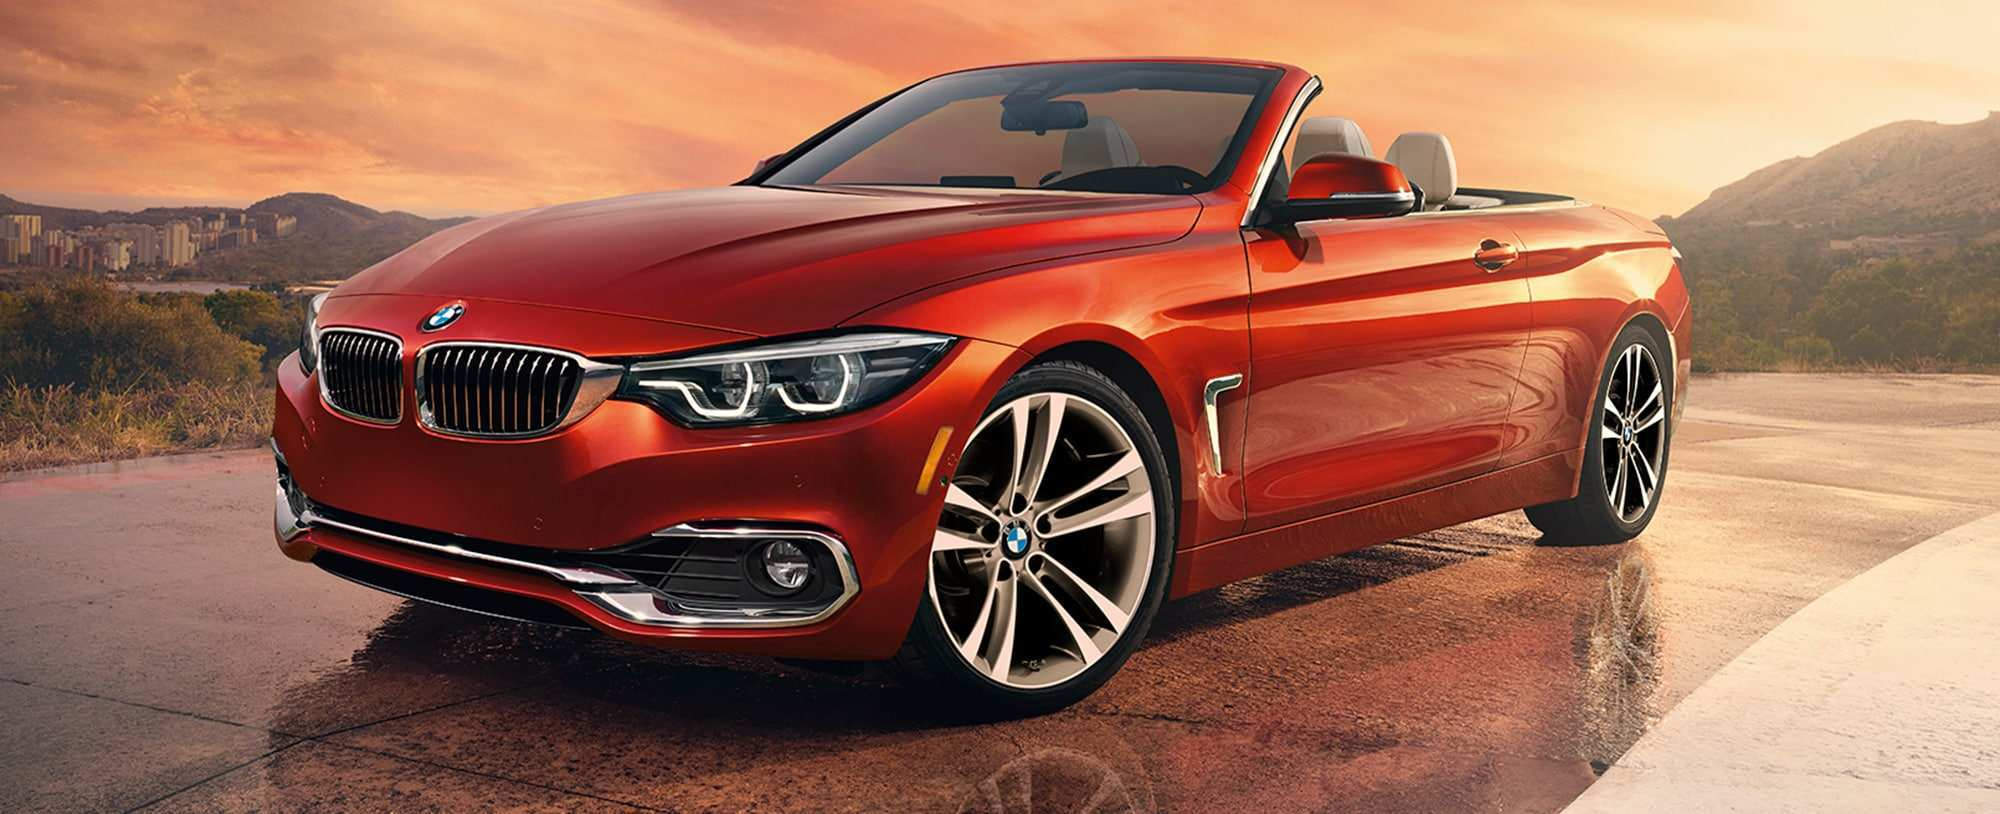 19 New 2019 Bmw 4 Series Pictures